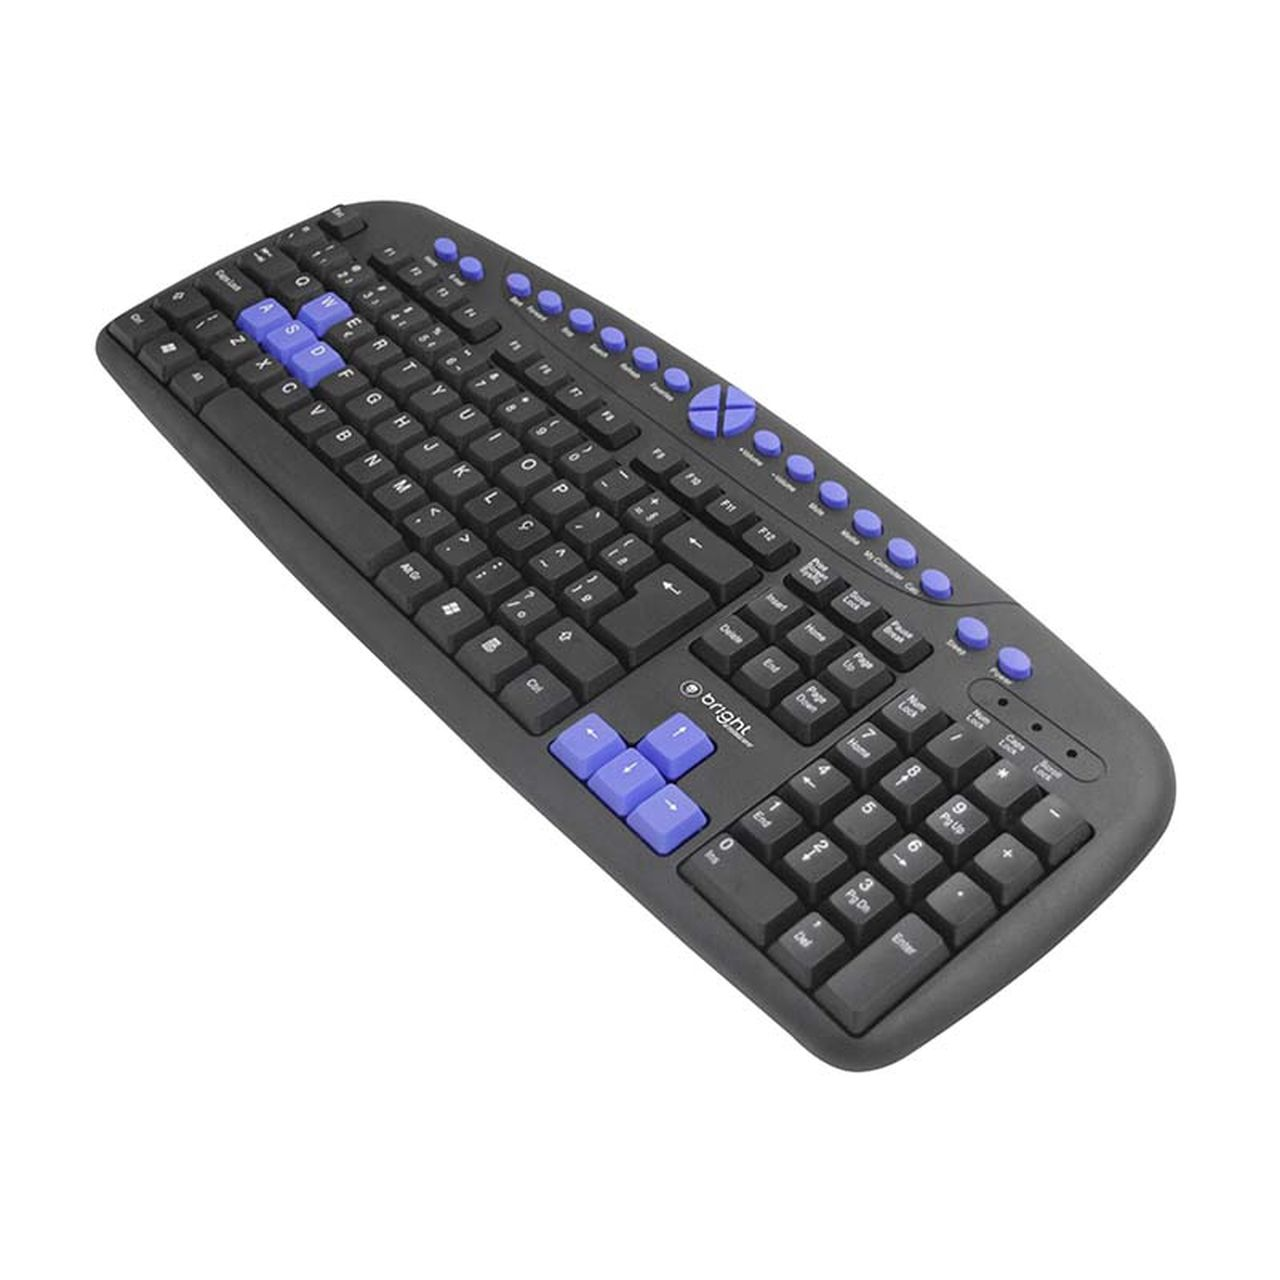 Teclado Gamer Multimídia Azul Qwerty Abnt2 483 - Bright